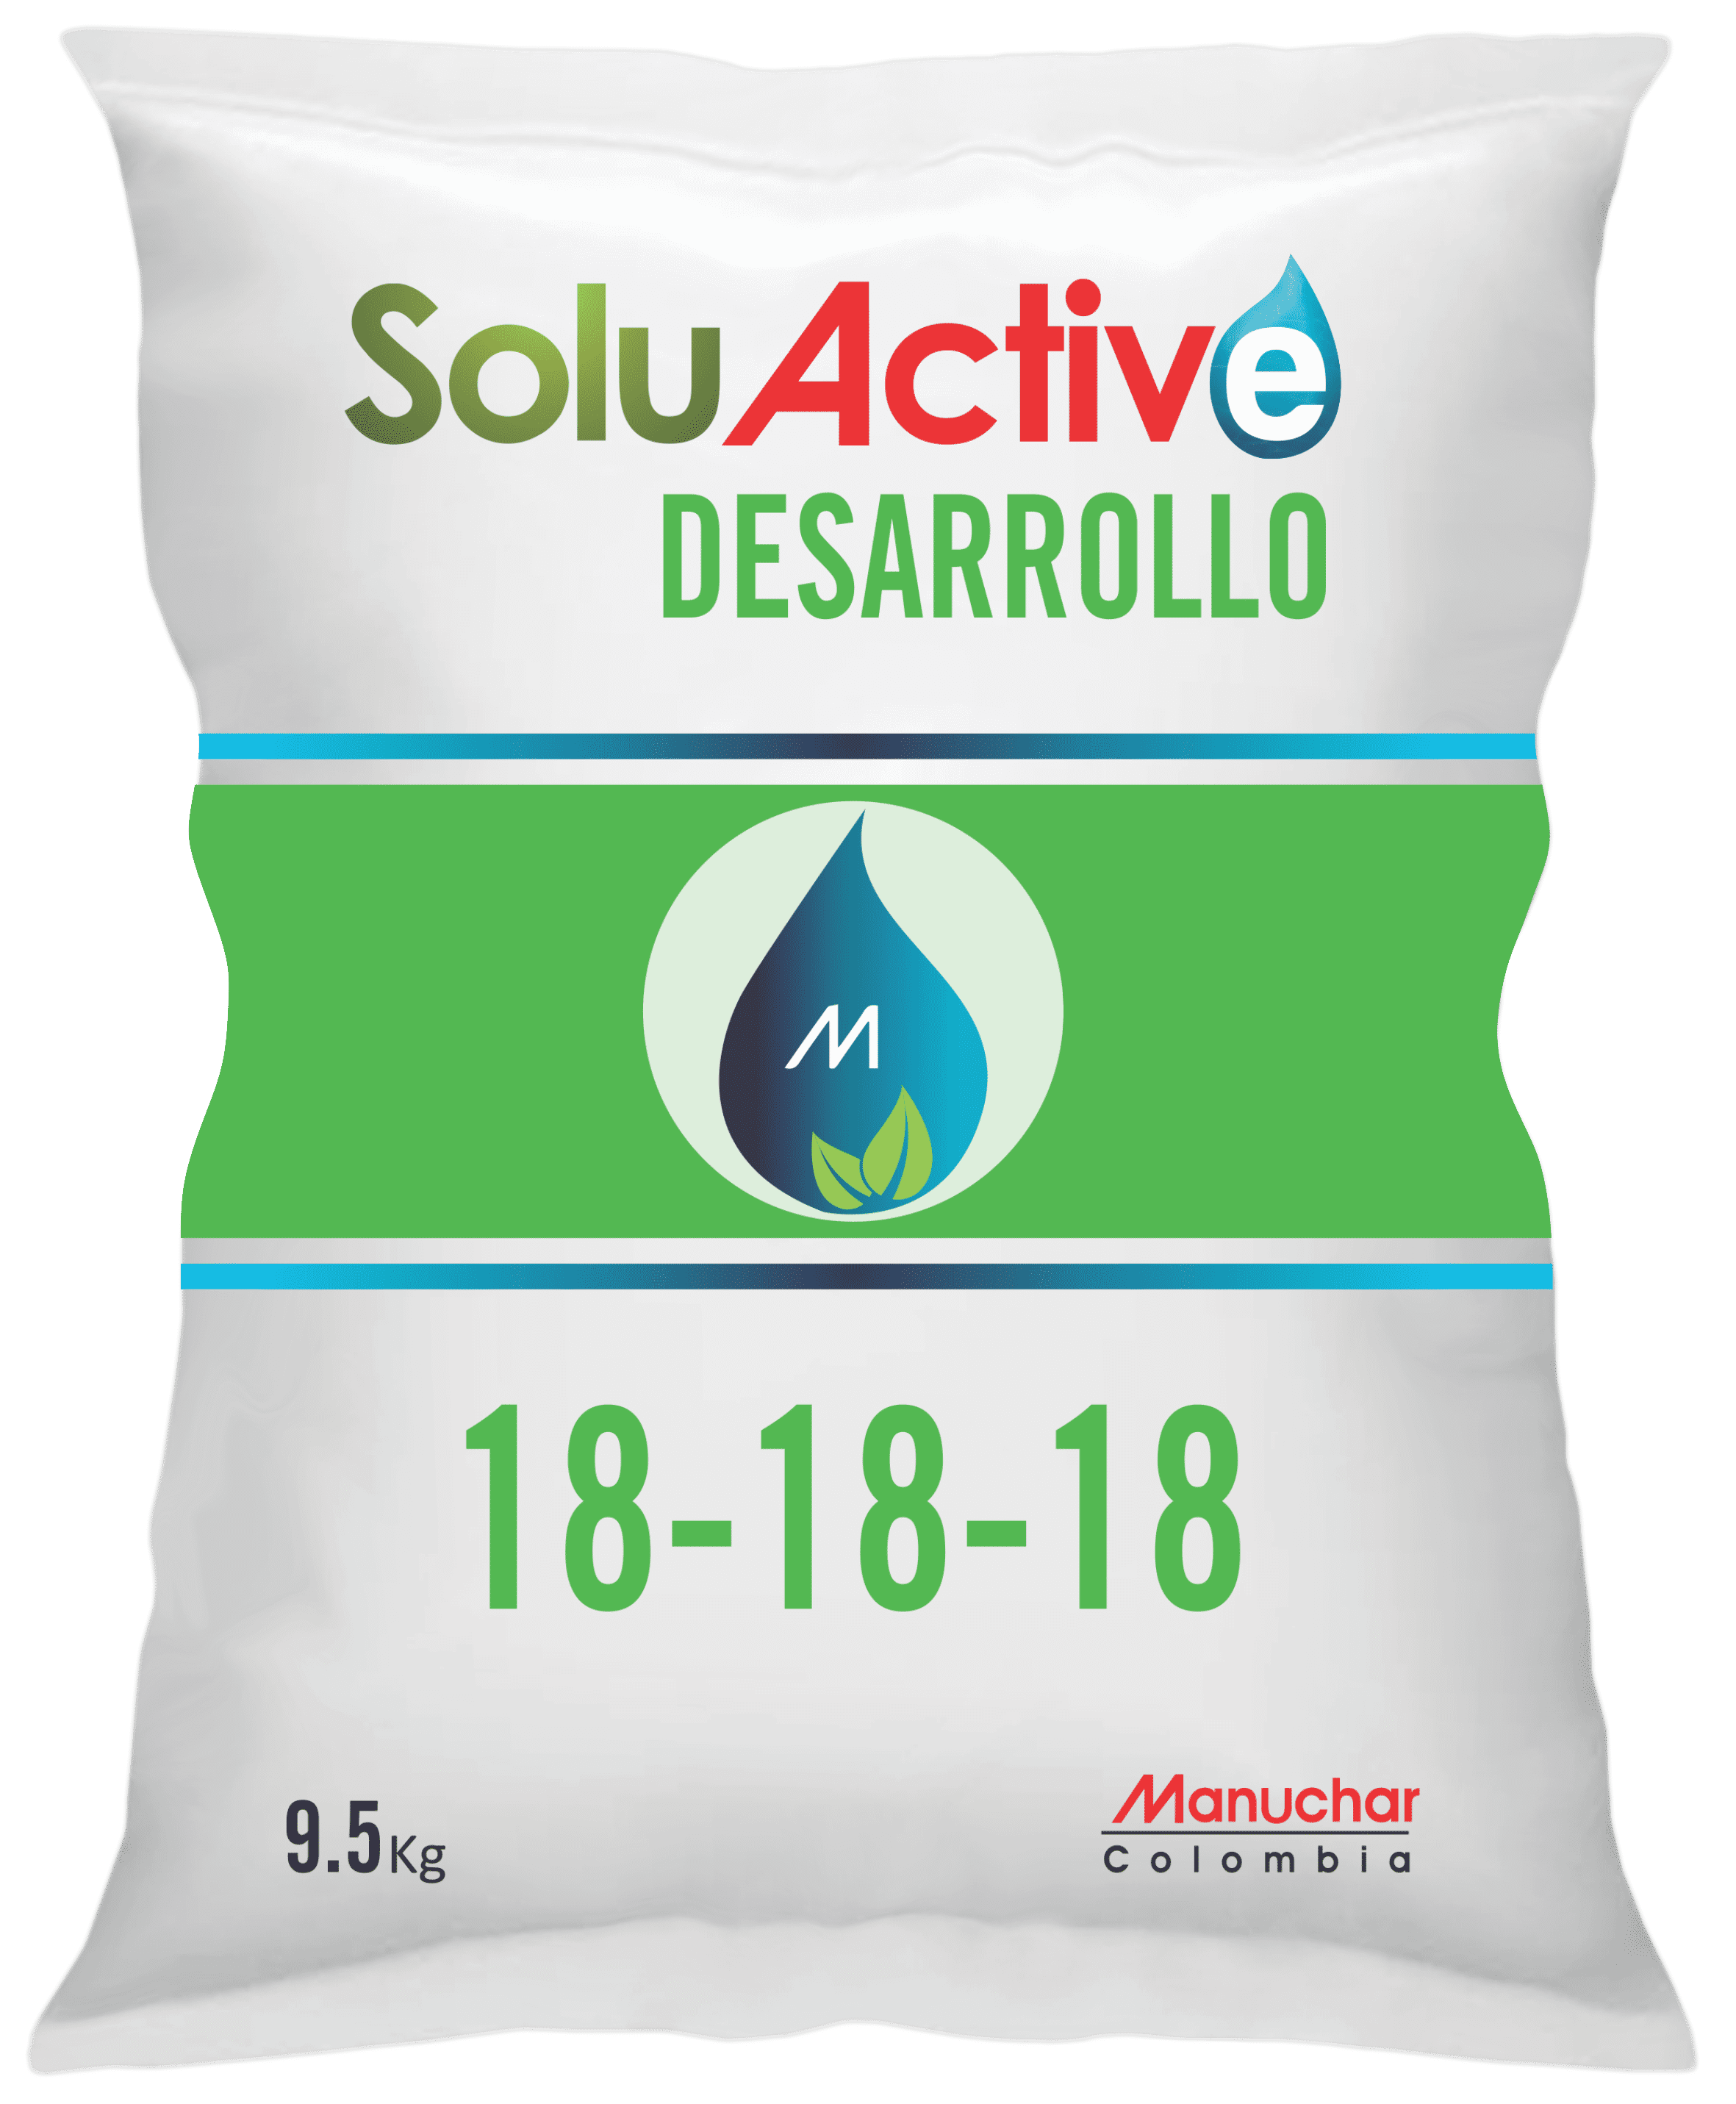 soluactive-desarrollo-1_optimized.png